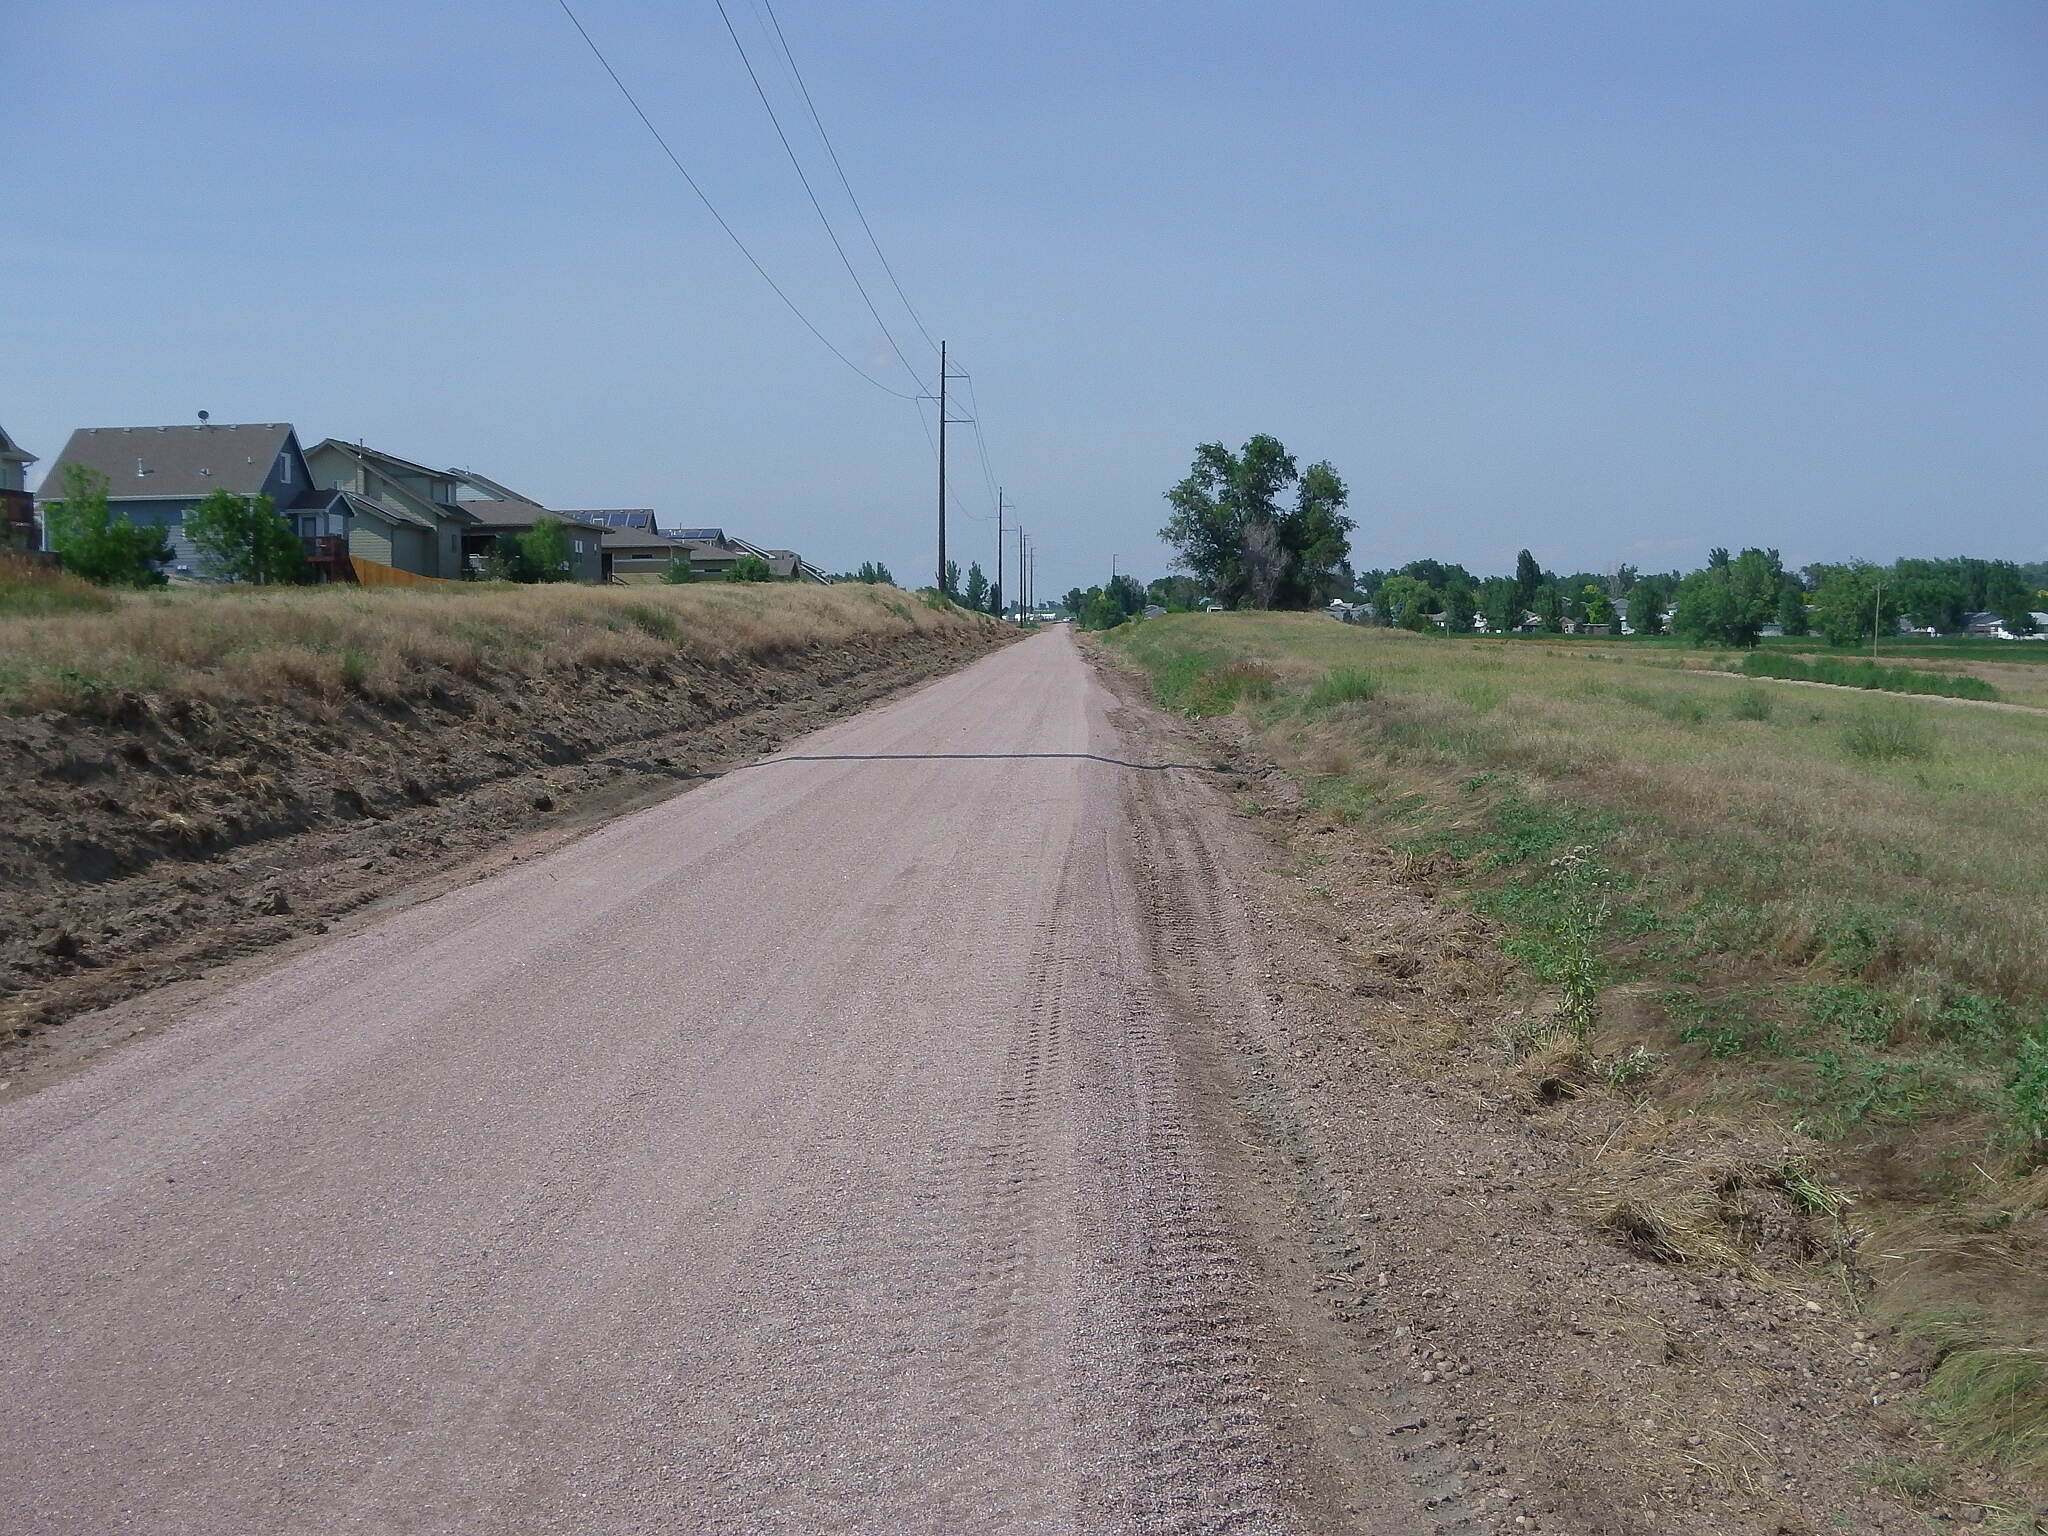 Great Western Trail (CO) Near Severance, CO The Great Western Trail, which passes through residential subdivisions and irrigated farmland,currently has 4.4 miles completed from Windsor to Severance. Construction of the remaining 7 miles to Eaton is in the planning stage.